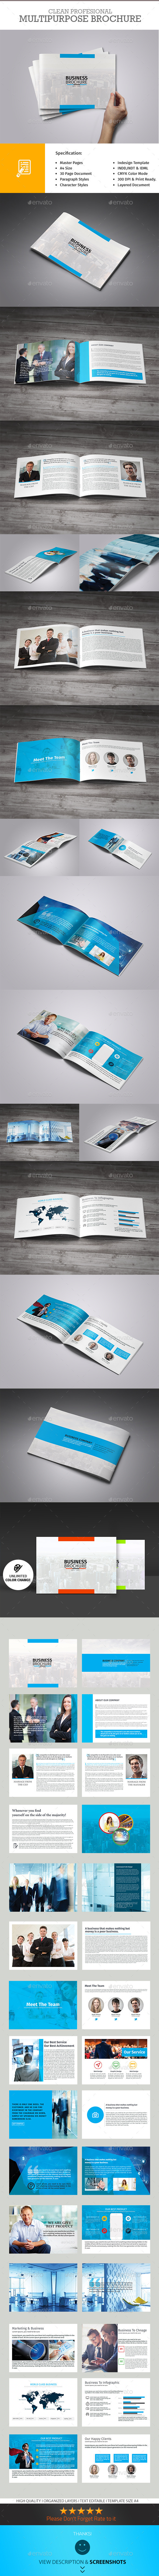 Business Solution - 30 Pages Business Brochure - Corporate Brochures